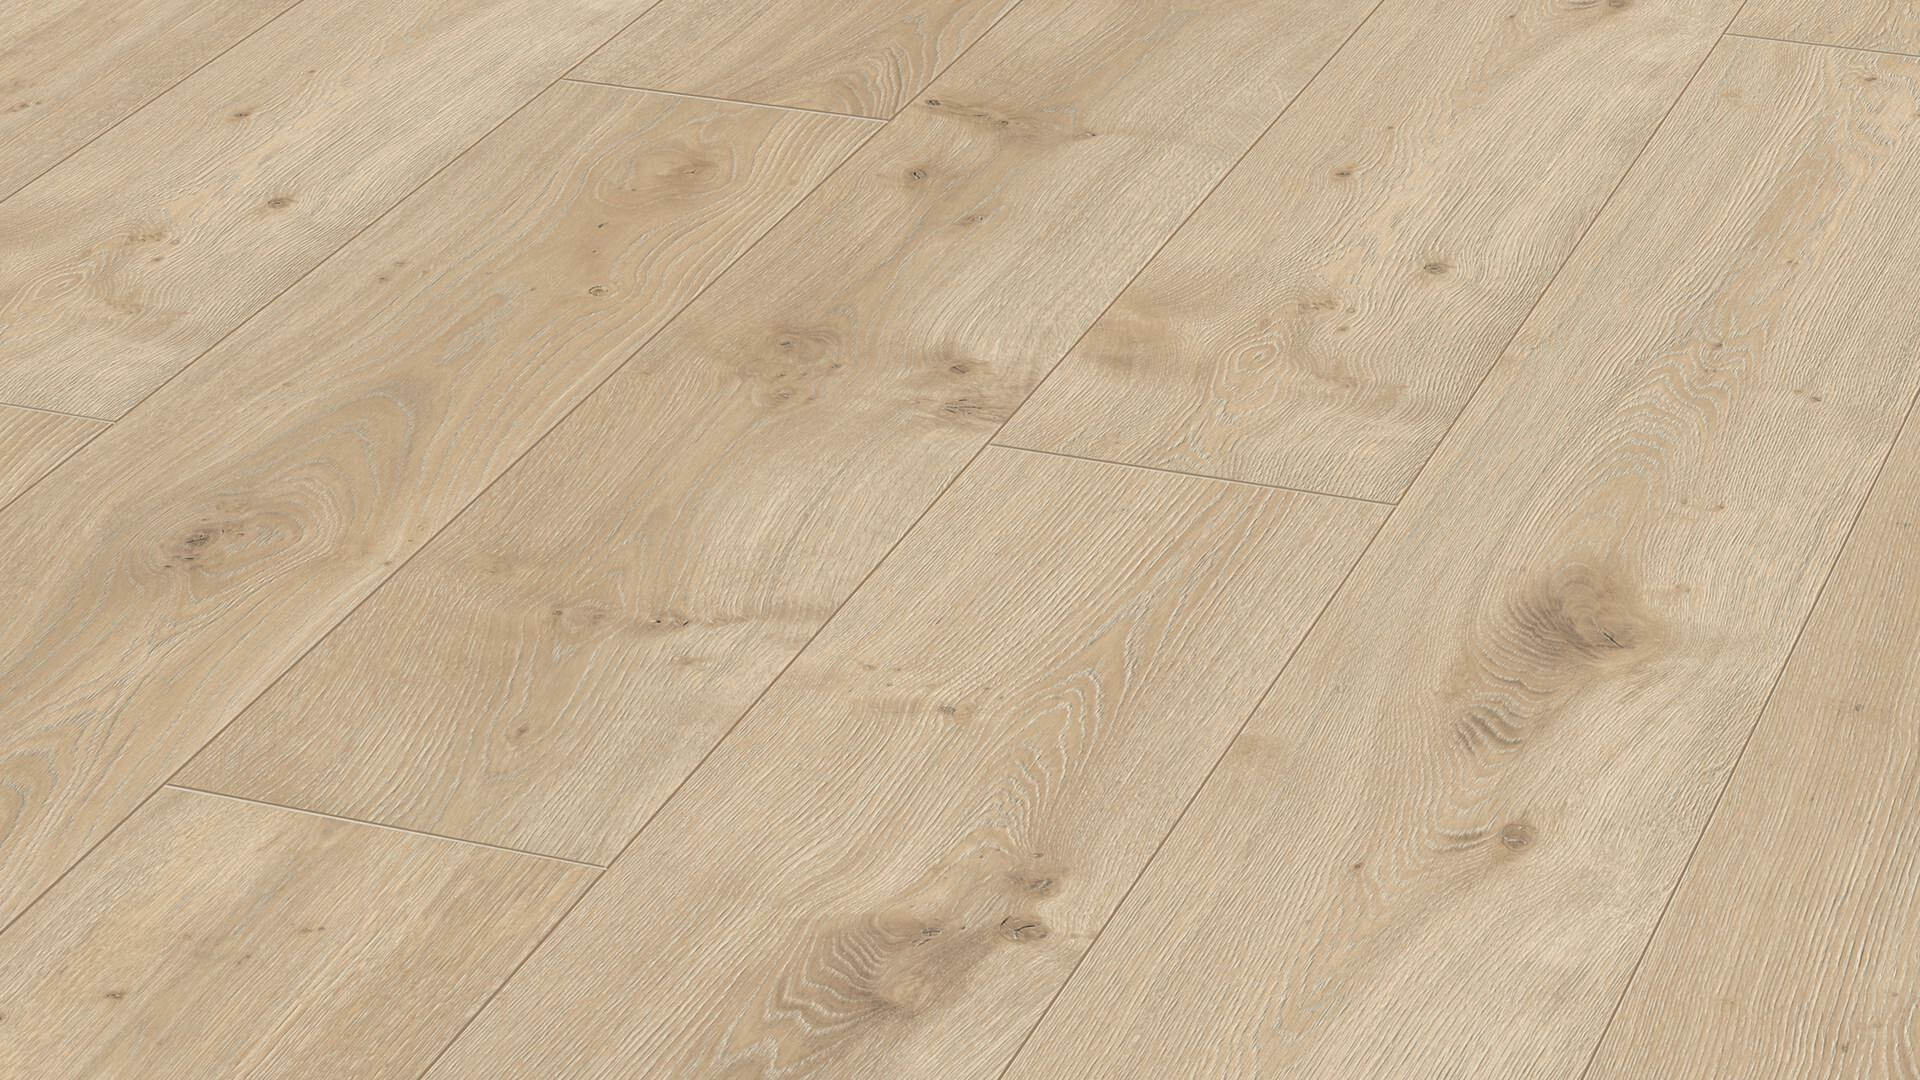 Laminate flooring MeisterDesign. laminate LL 250 S Atacama oak 6380